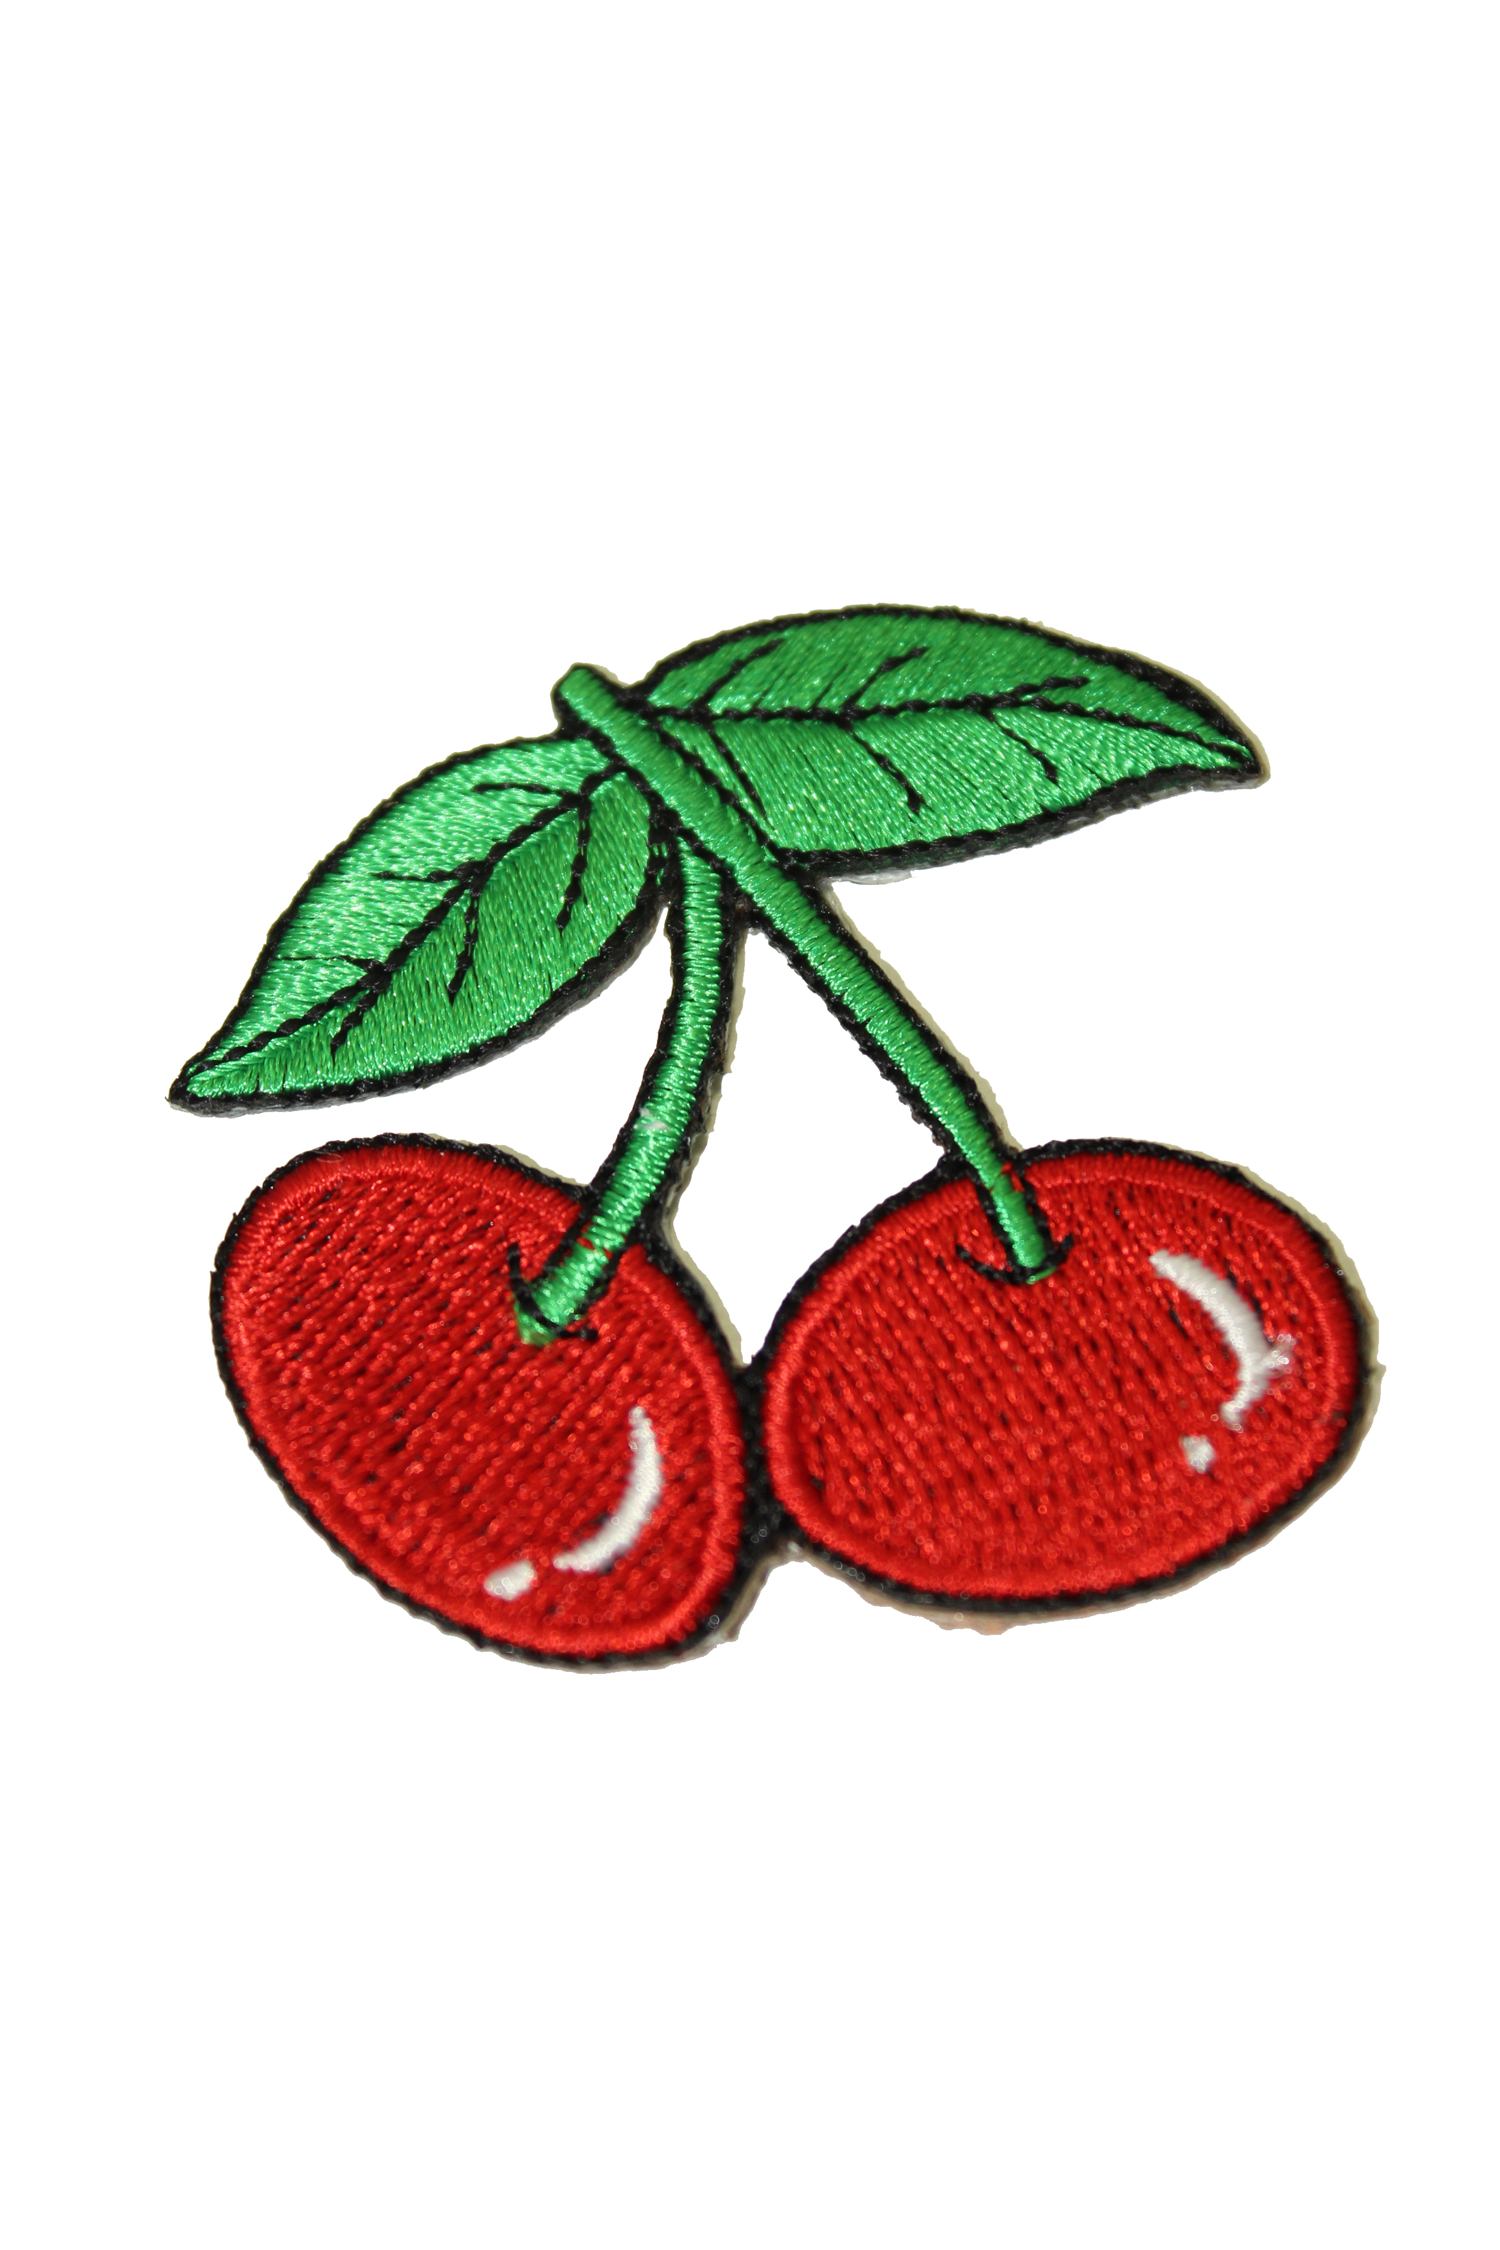 kleiner retro Cherry rockabilly Kirschen Patch, pin up Aufnäher rot